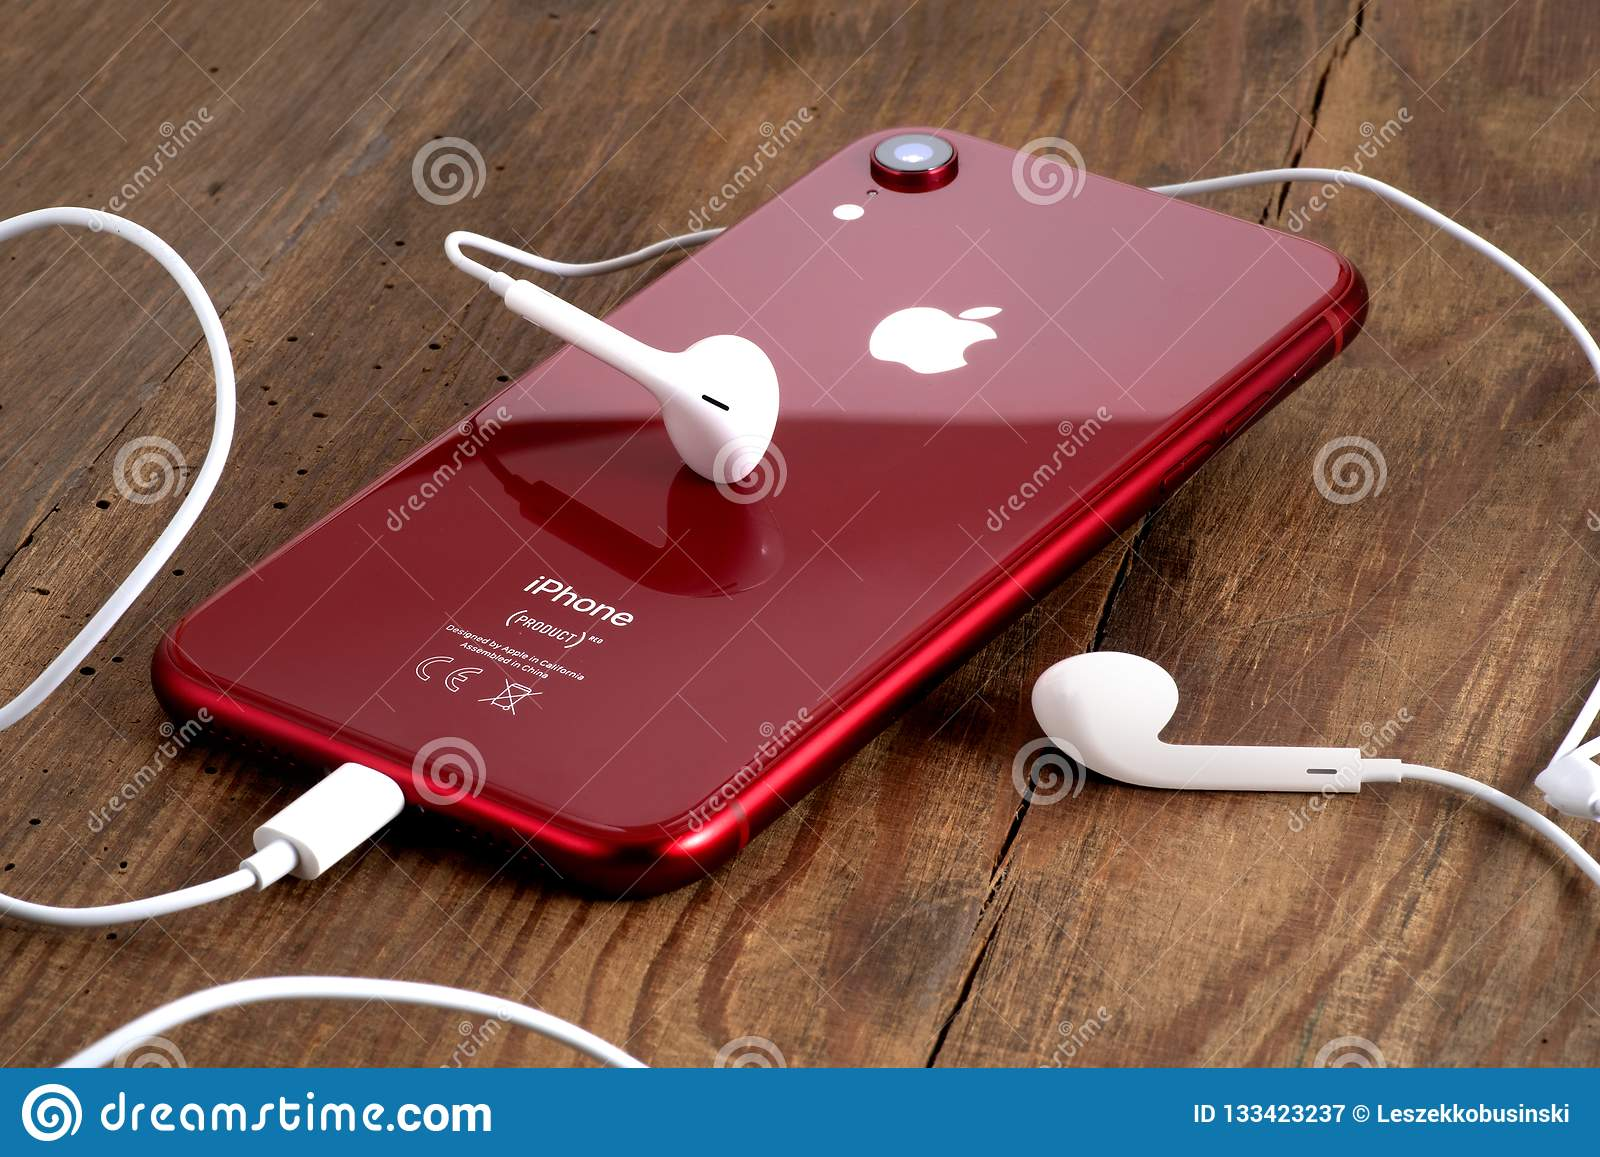 Red Iphone Xr On A Wooden Table With White Earphones Editorial Photography Image Of Design Gadget 133423237